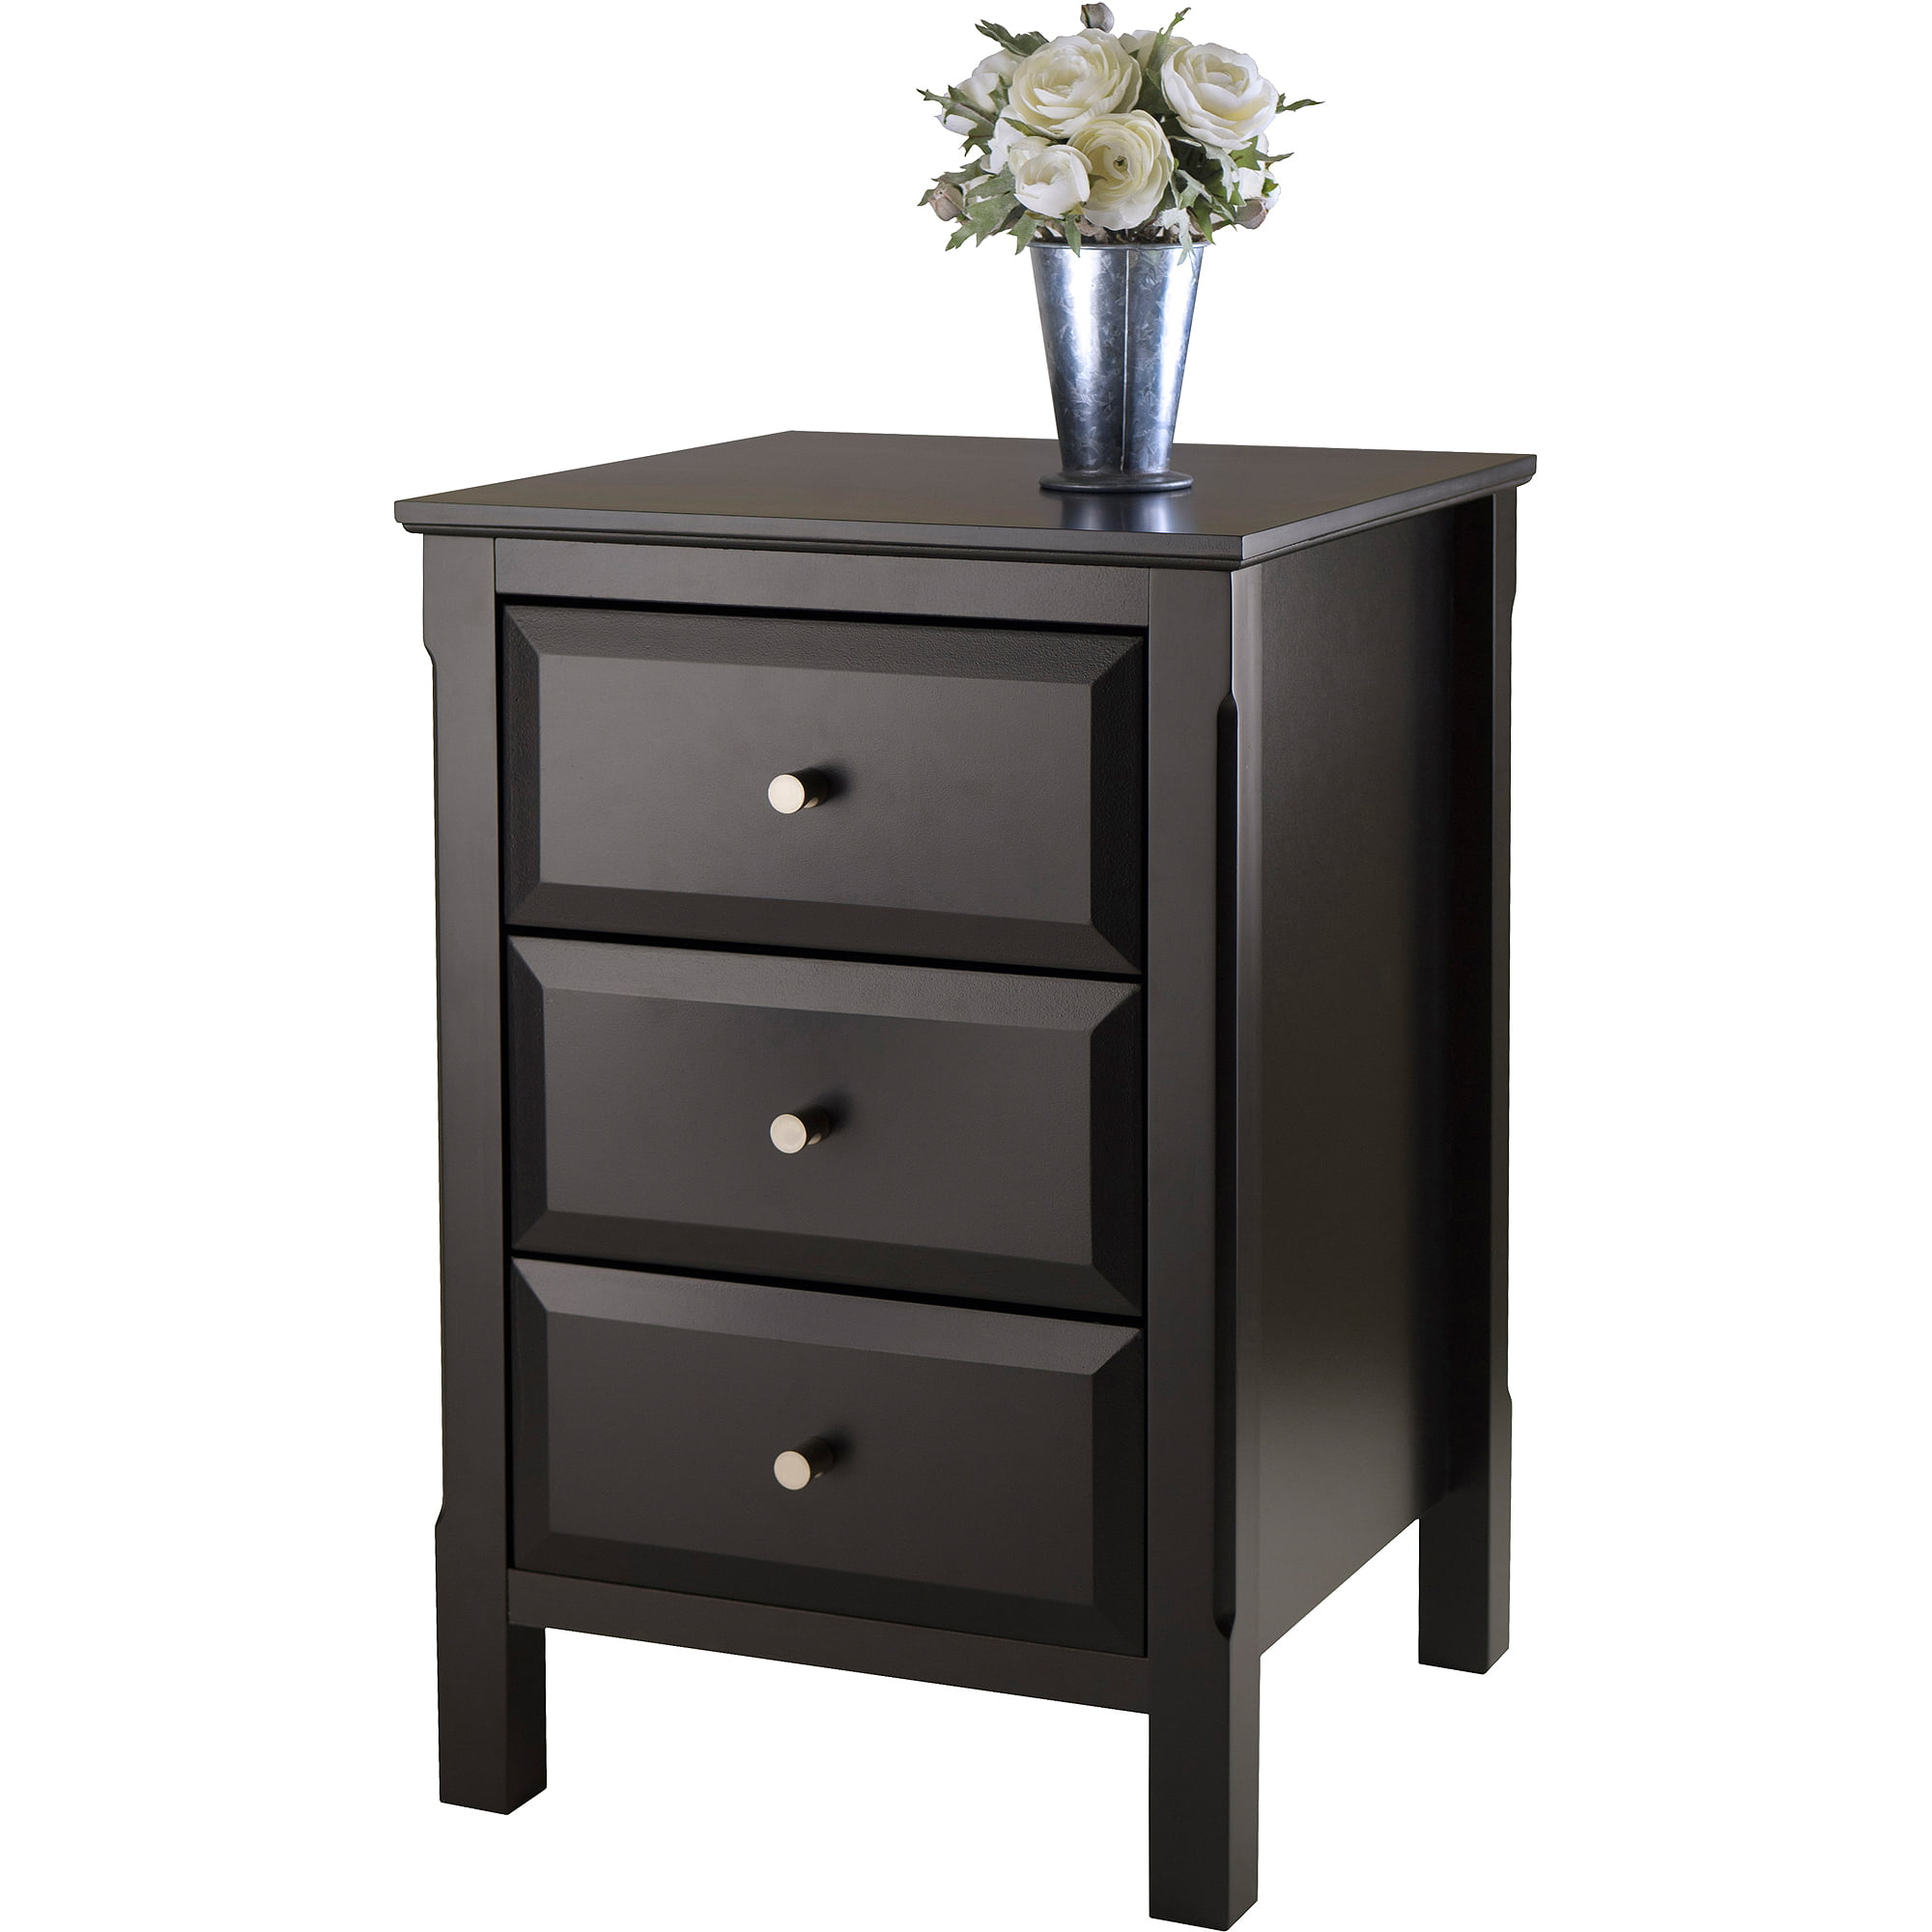 Timmy Nightstand Accent Table, Black by Winsome Wood